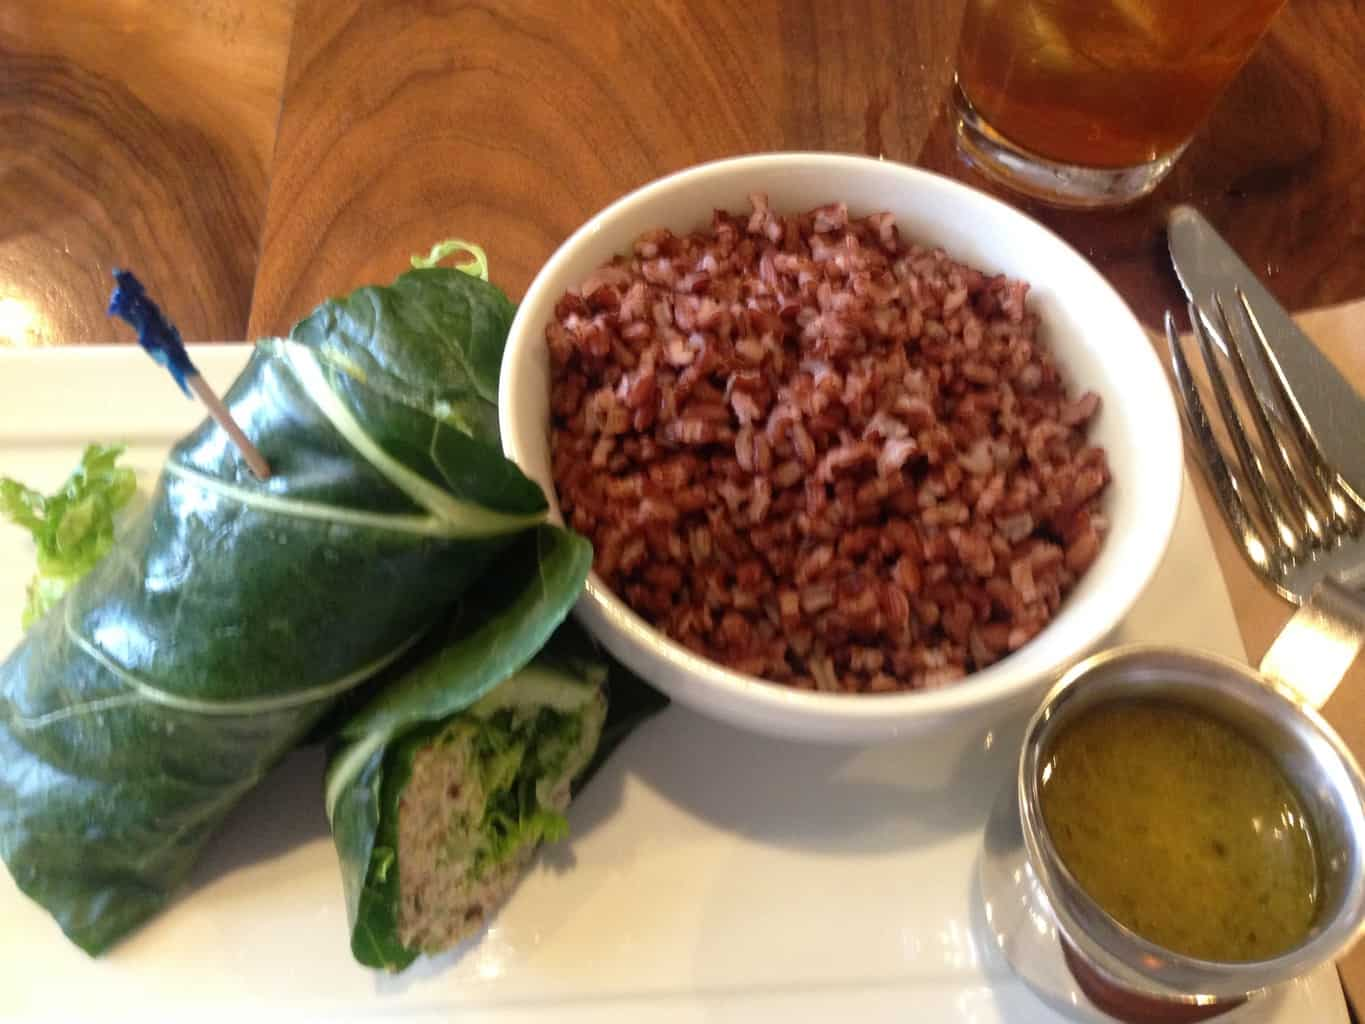 Gluten-Free Collard Green Wraps (Plus a Few Other Options)